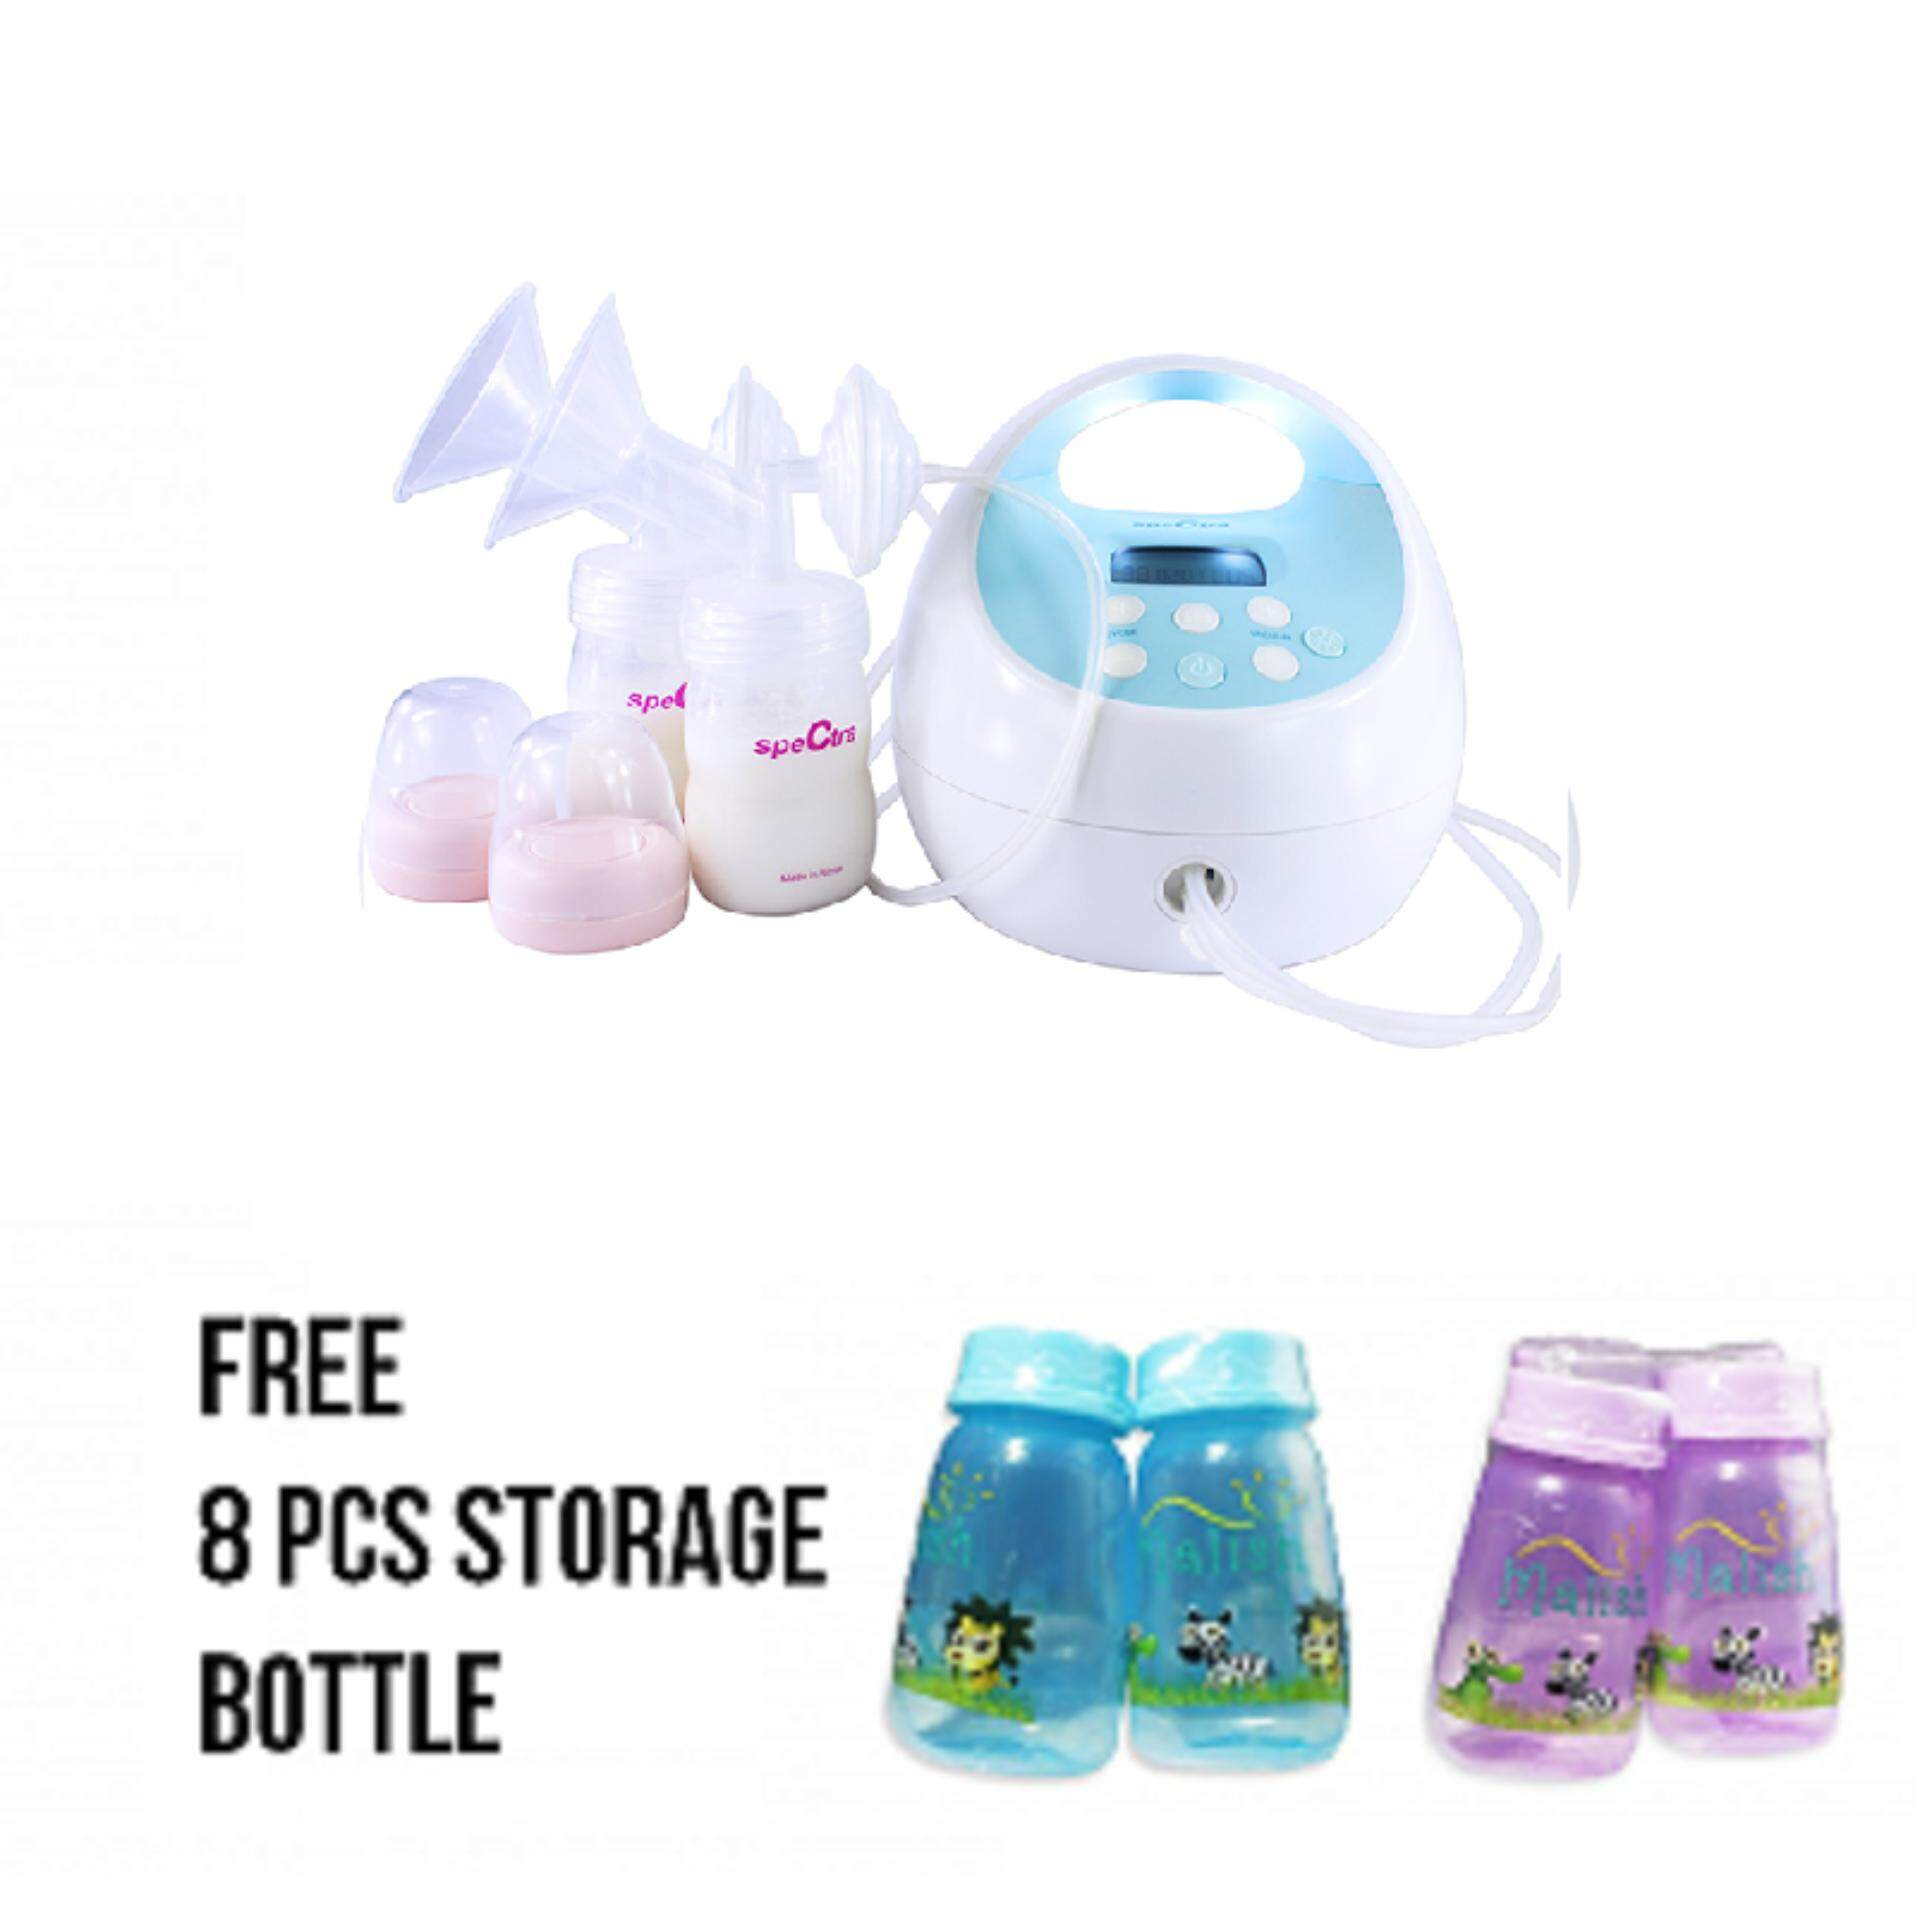 Pump Mama Online New Arrival Obebe Electronic Breast 3 Levels Rechargeable Battery Spectra S1 Double Electric Free 8 Pcs Storage Bottle